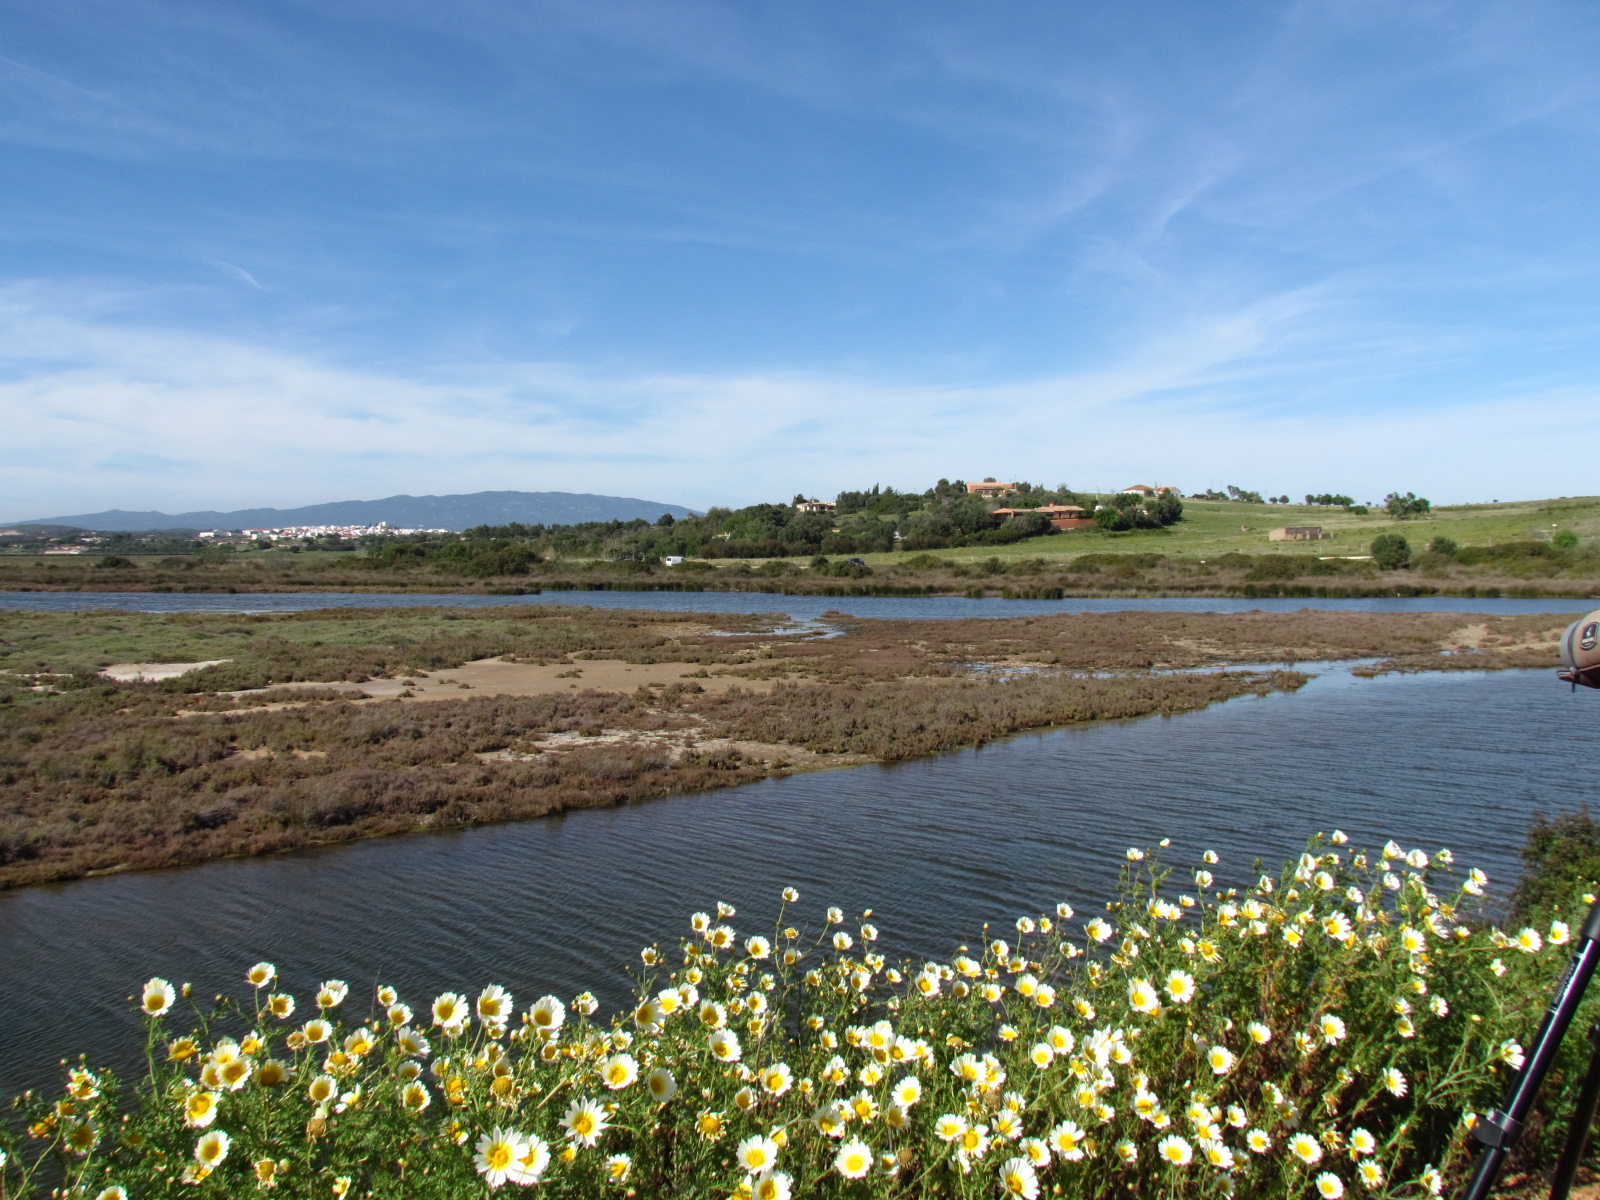 A marsh, flowers on the foreground and hills on the background